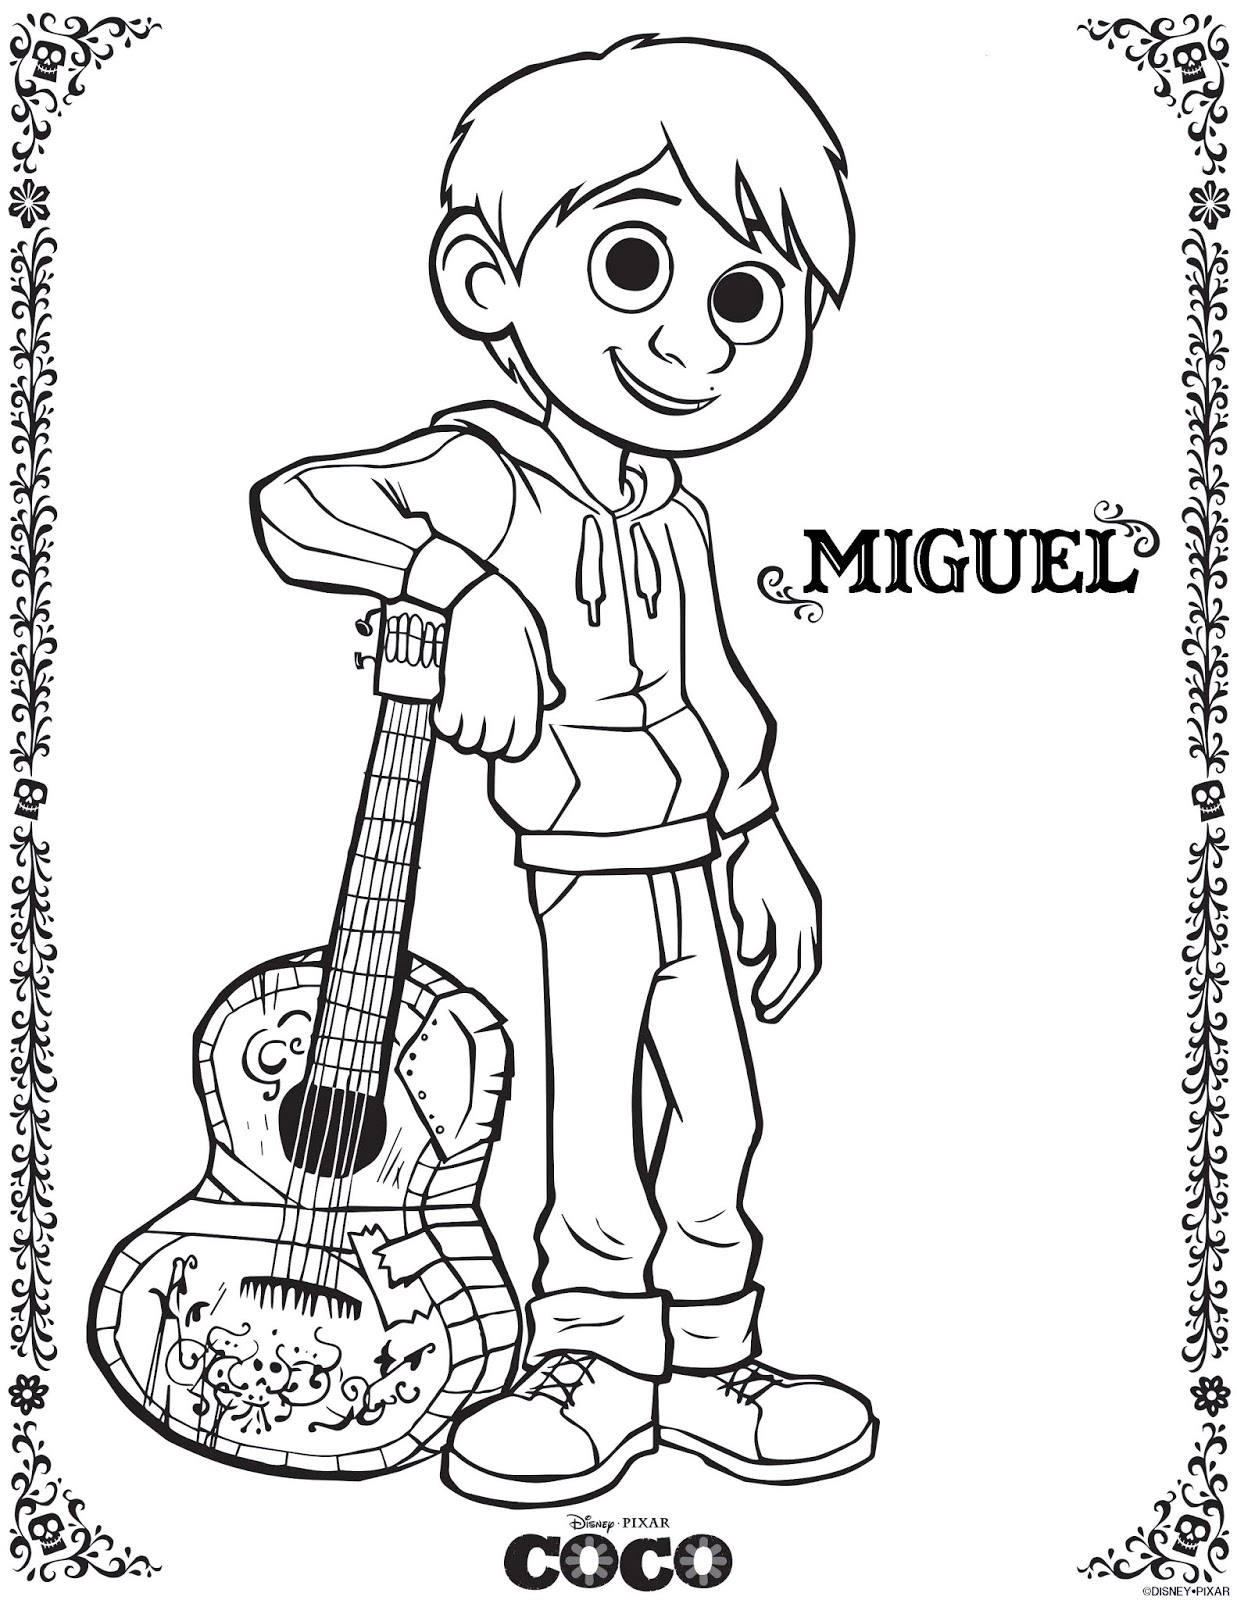 Coco Coloring Pages (November 9 Edition) - Miguel coloring pages